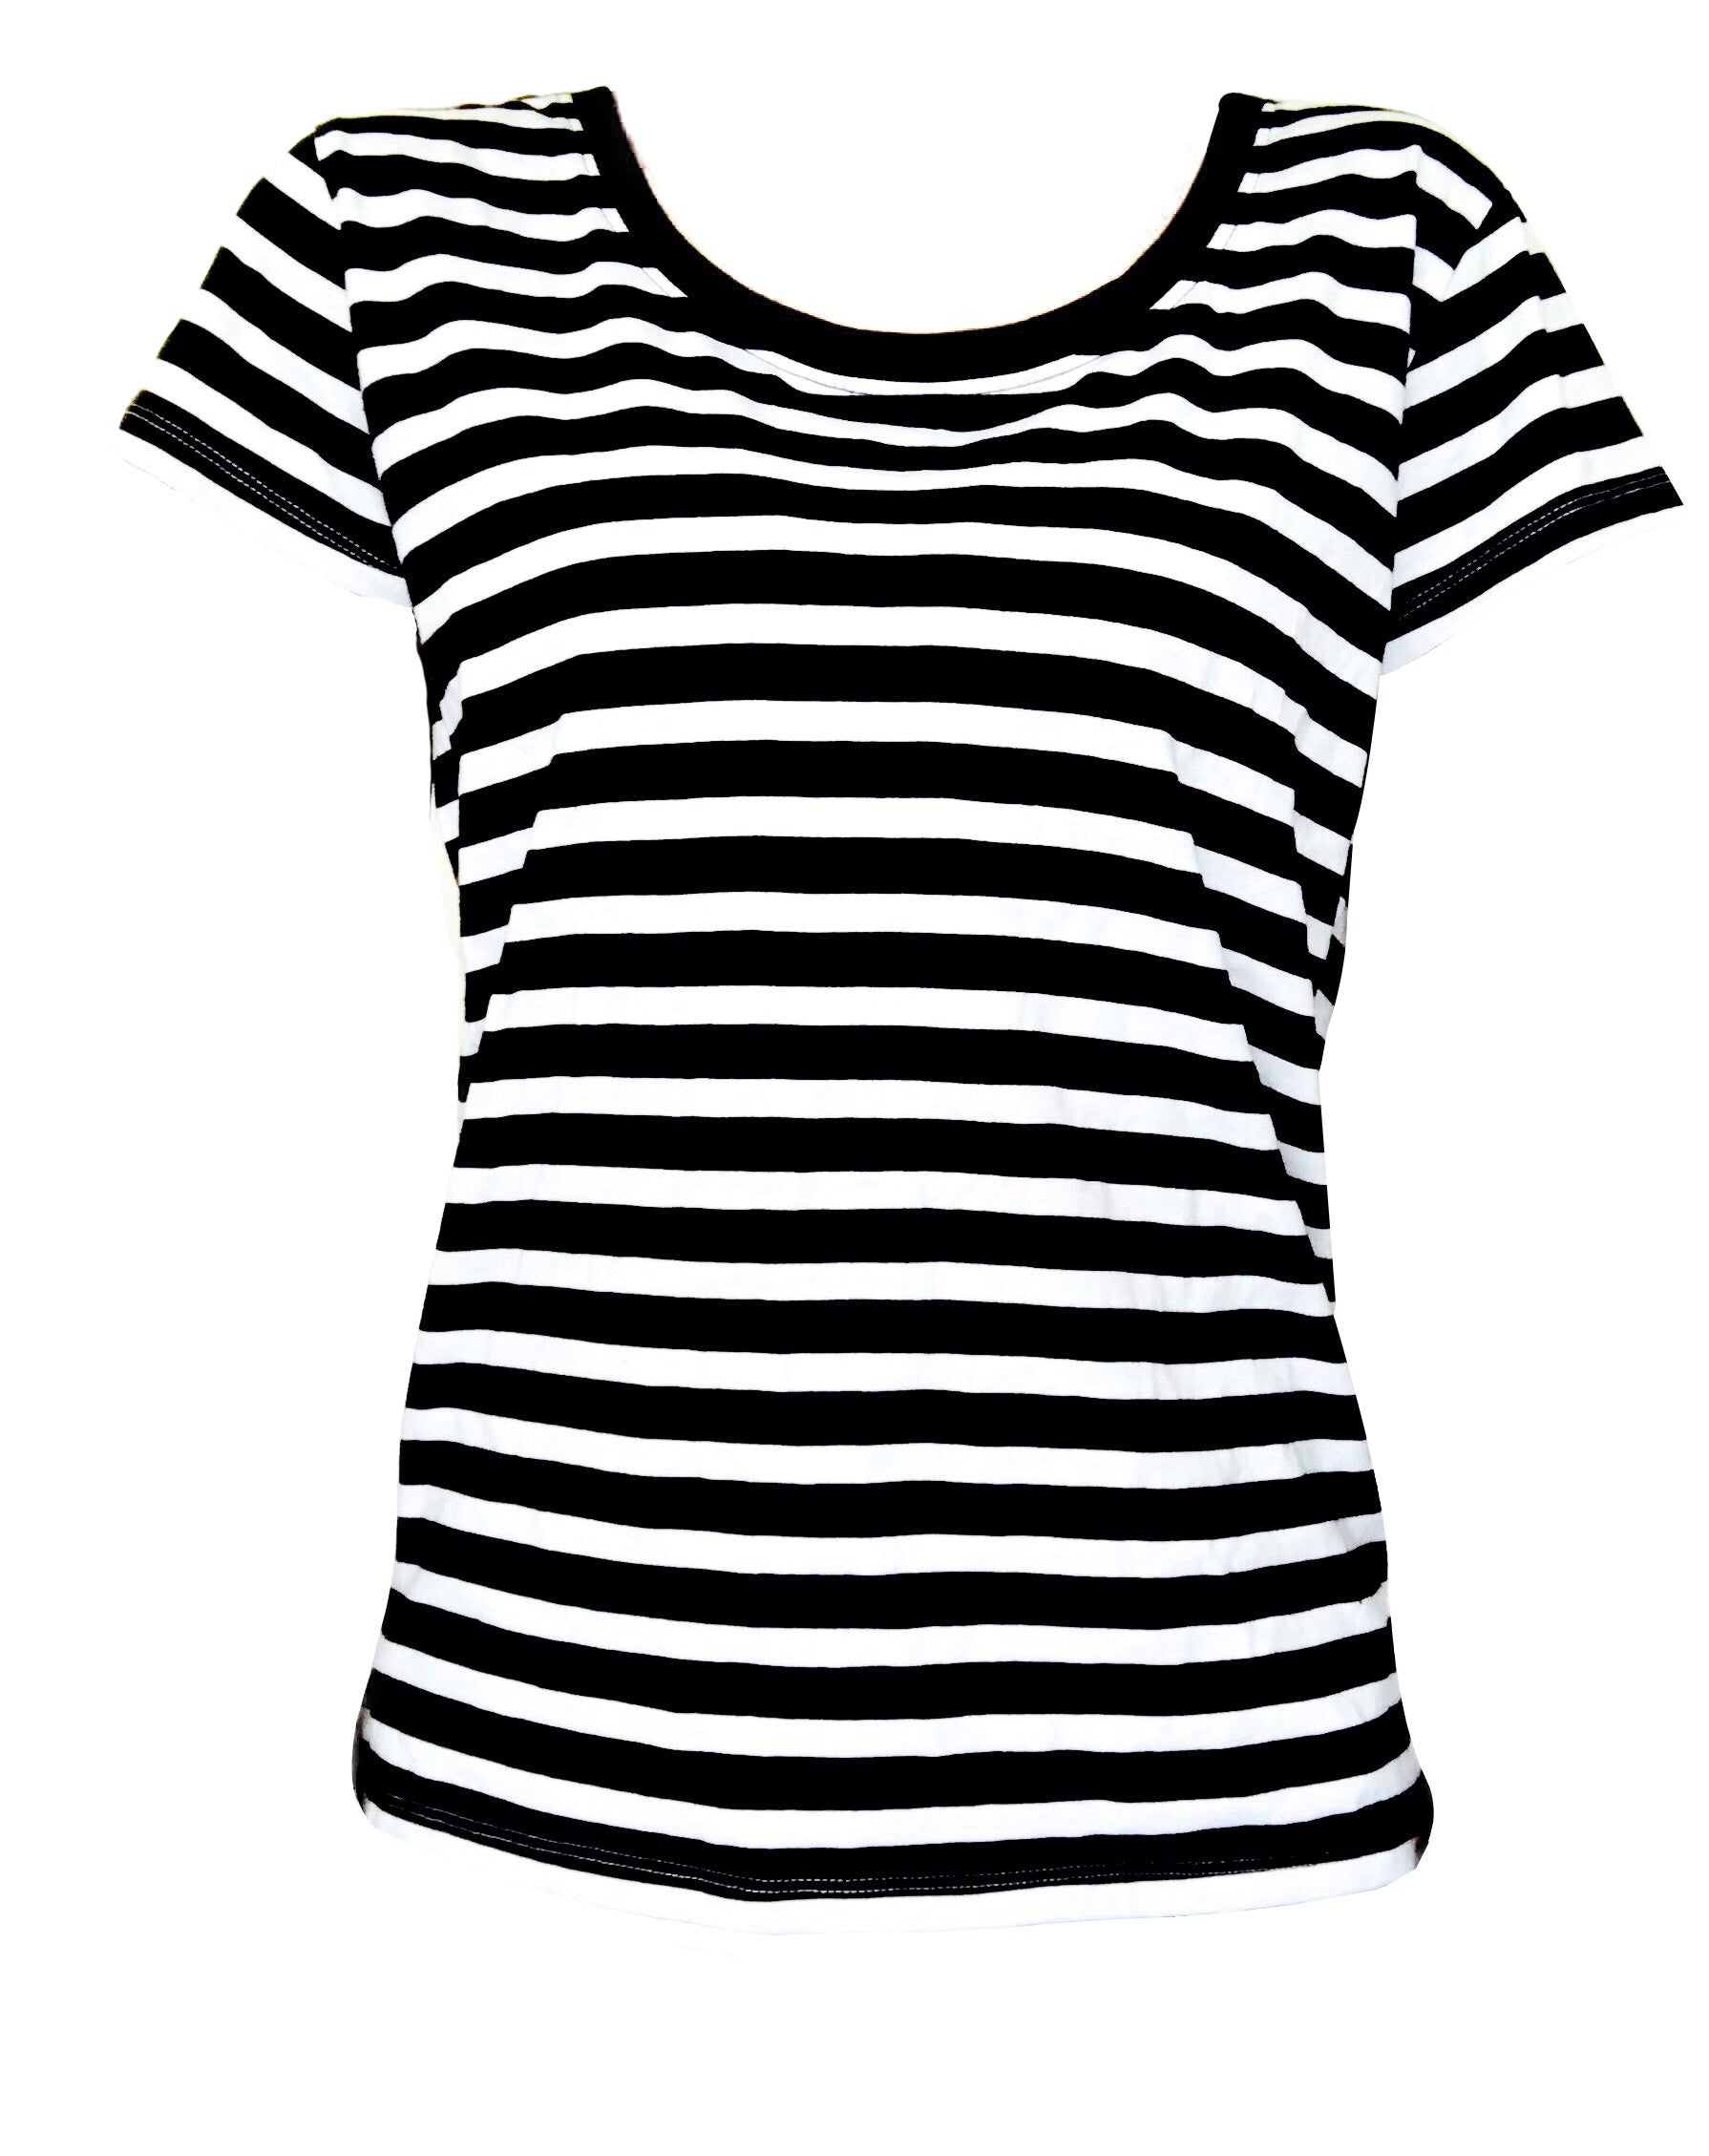 100% GOTS Certified Organic Tee with White-Navy Stripes